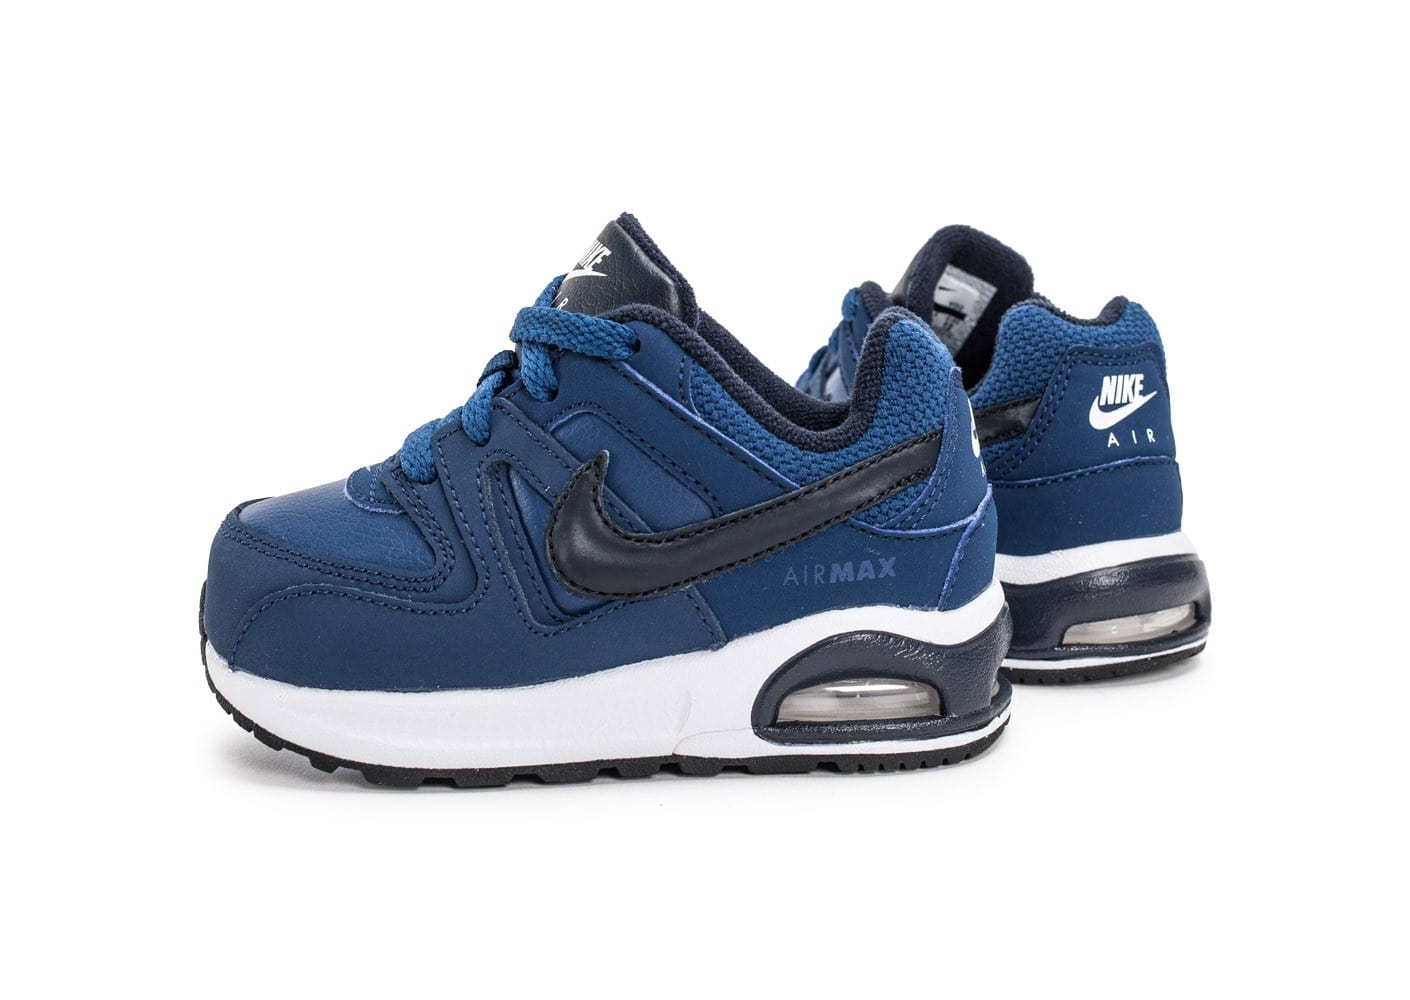 nike baskets air max command ltr chaussures homme redskins